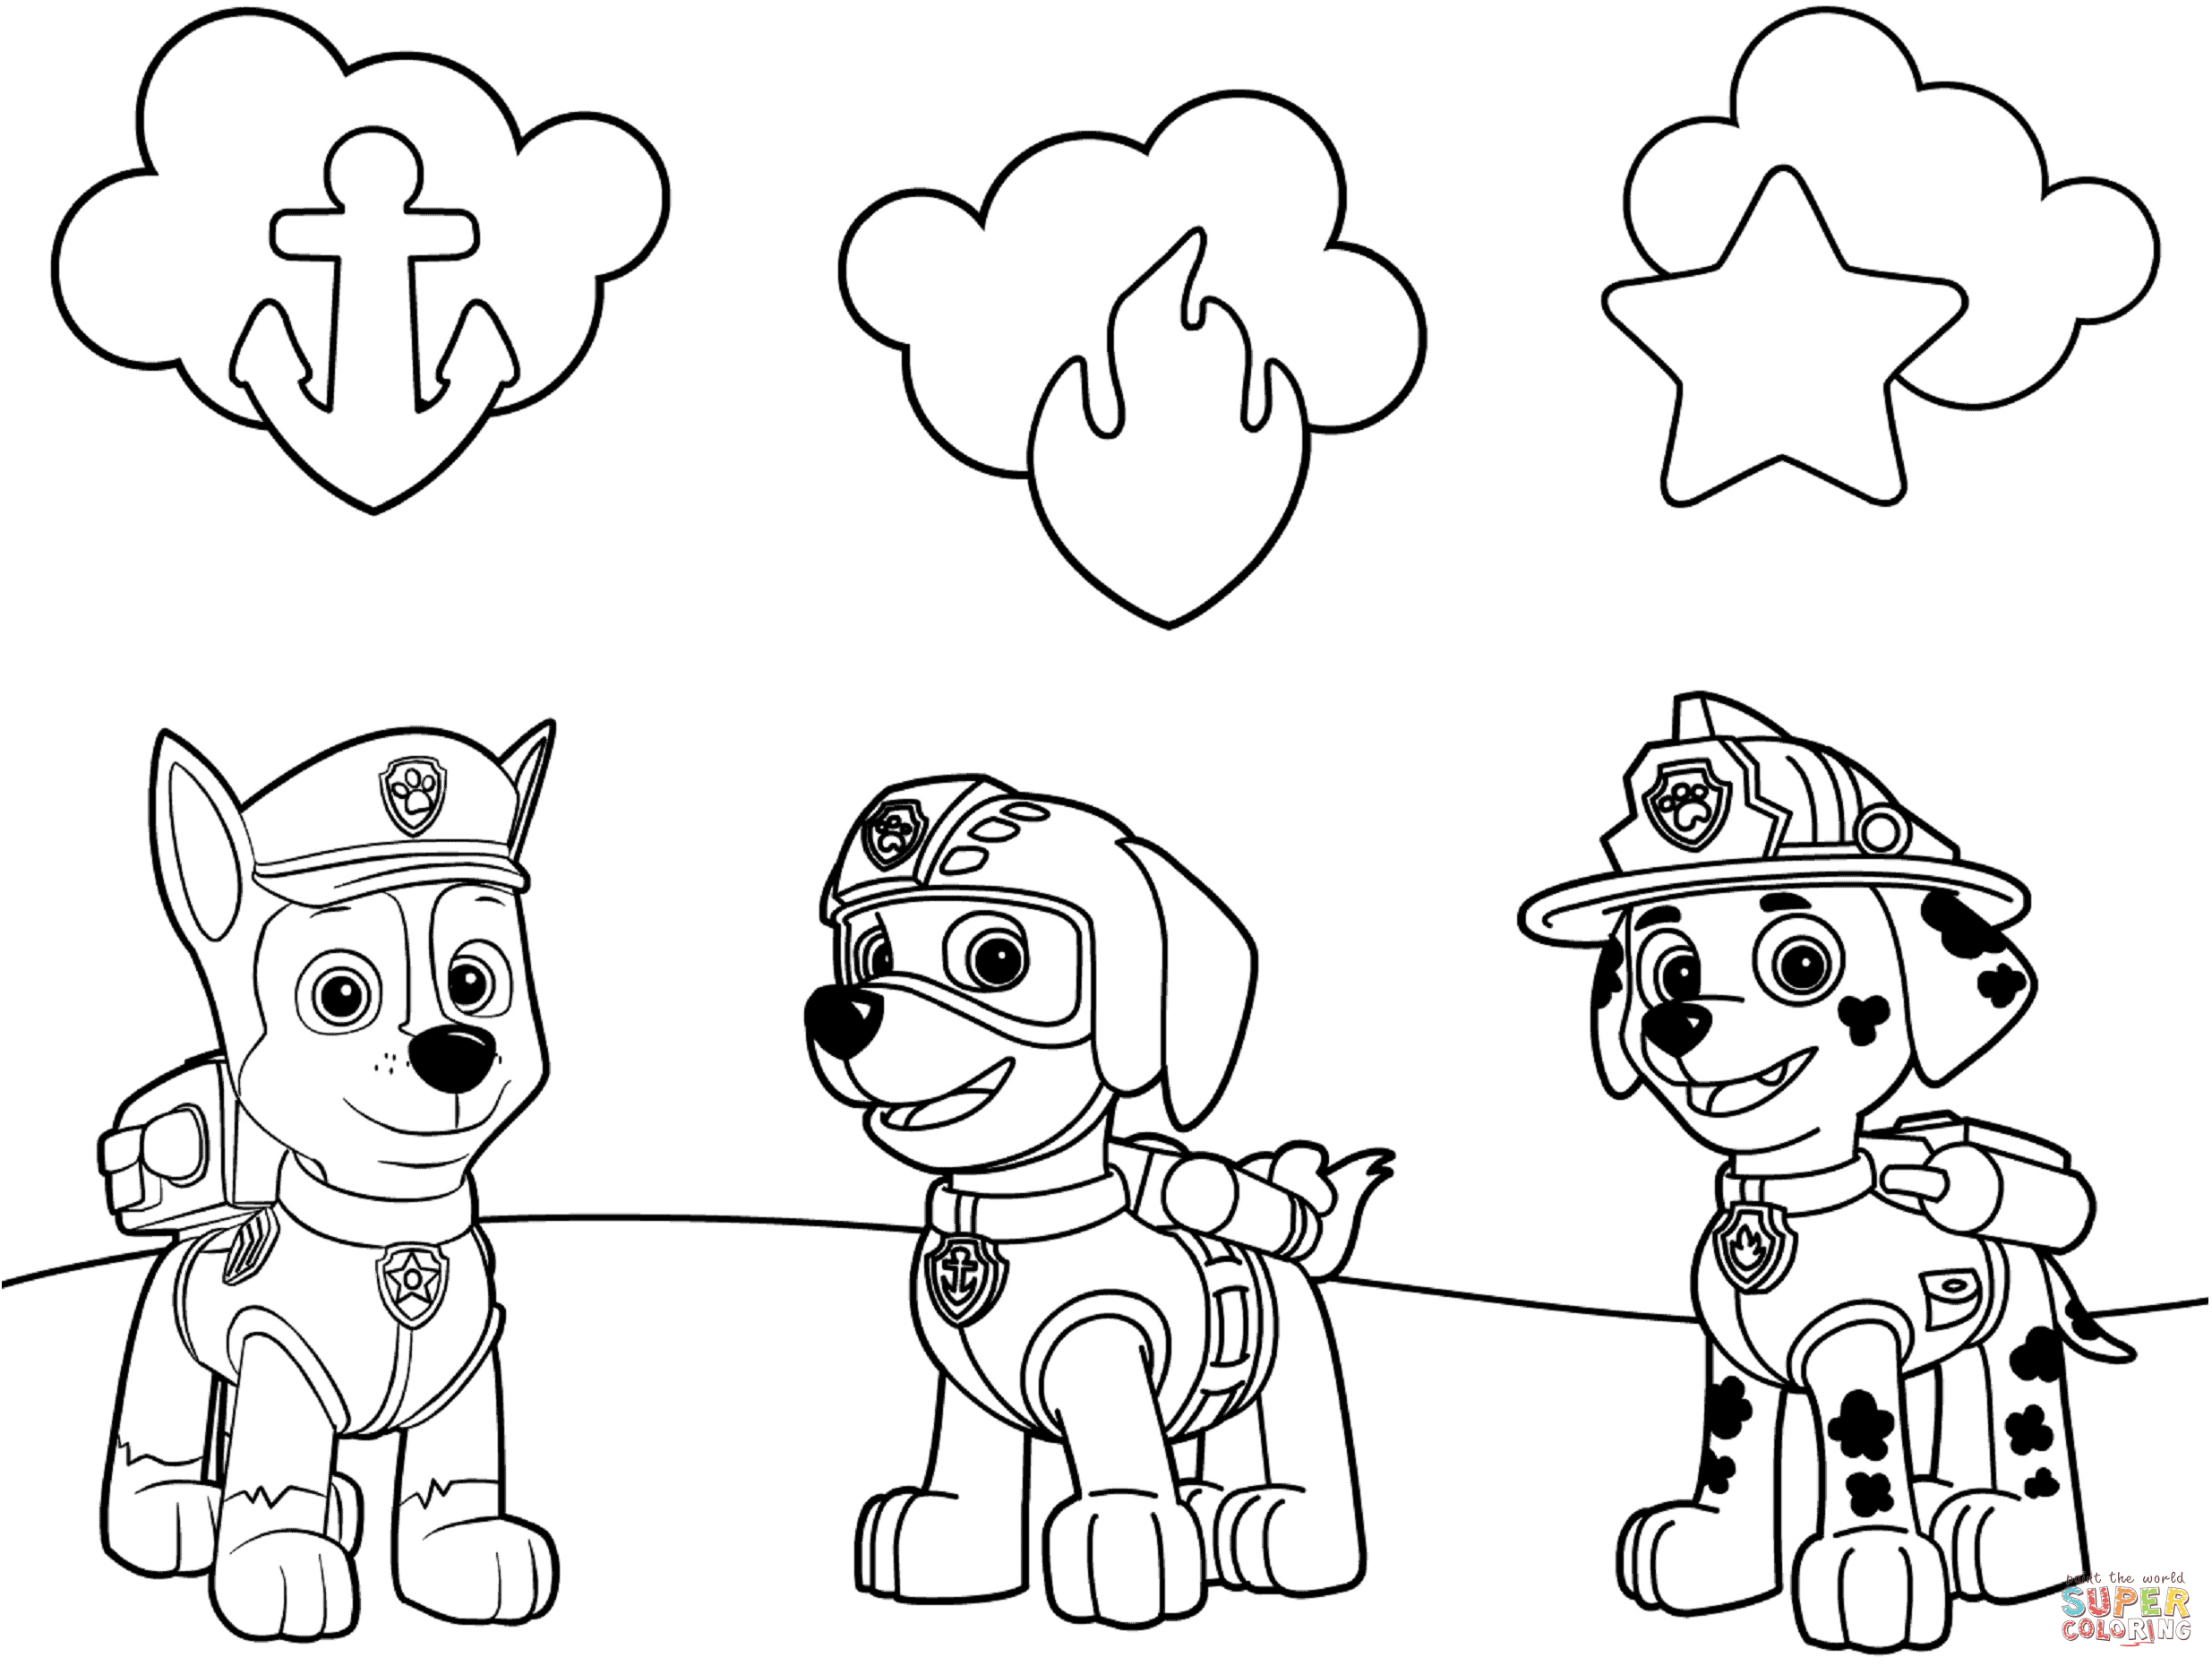 paw patrol badges coloring page free printable coloring pages - Free Printable Coloring Pictures